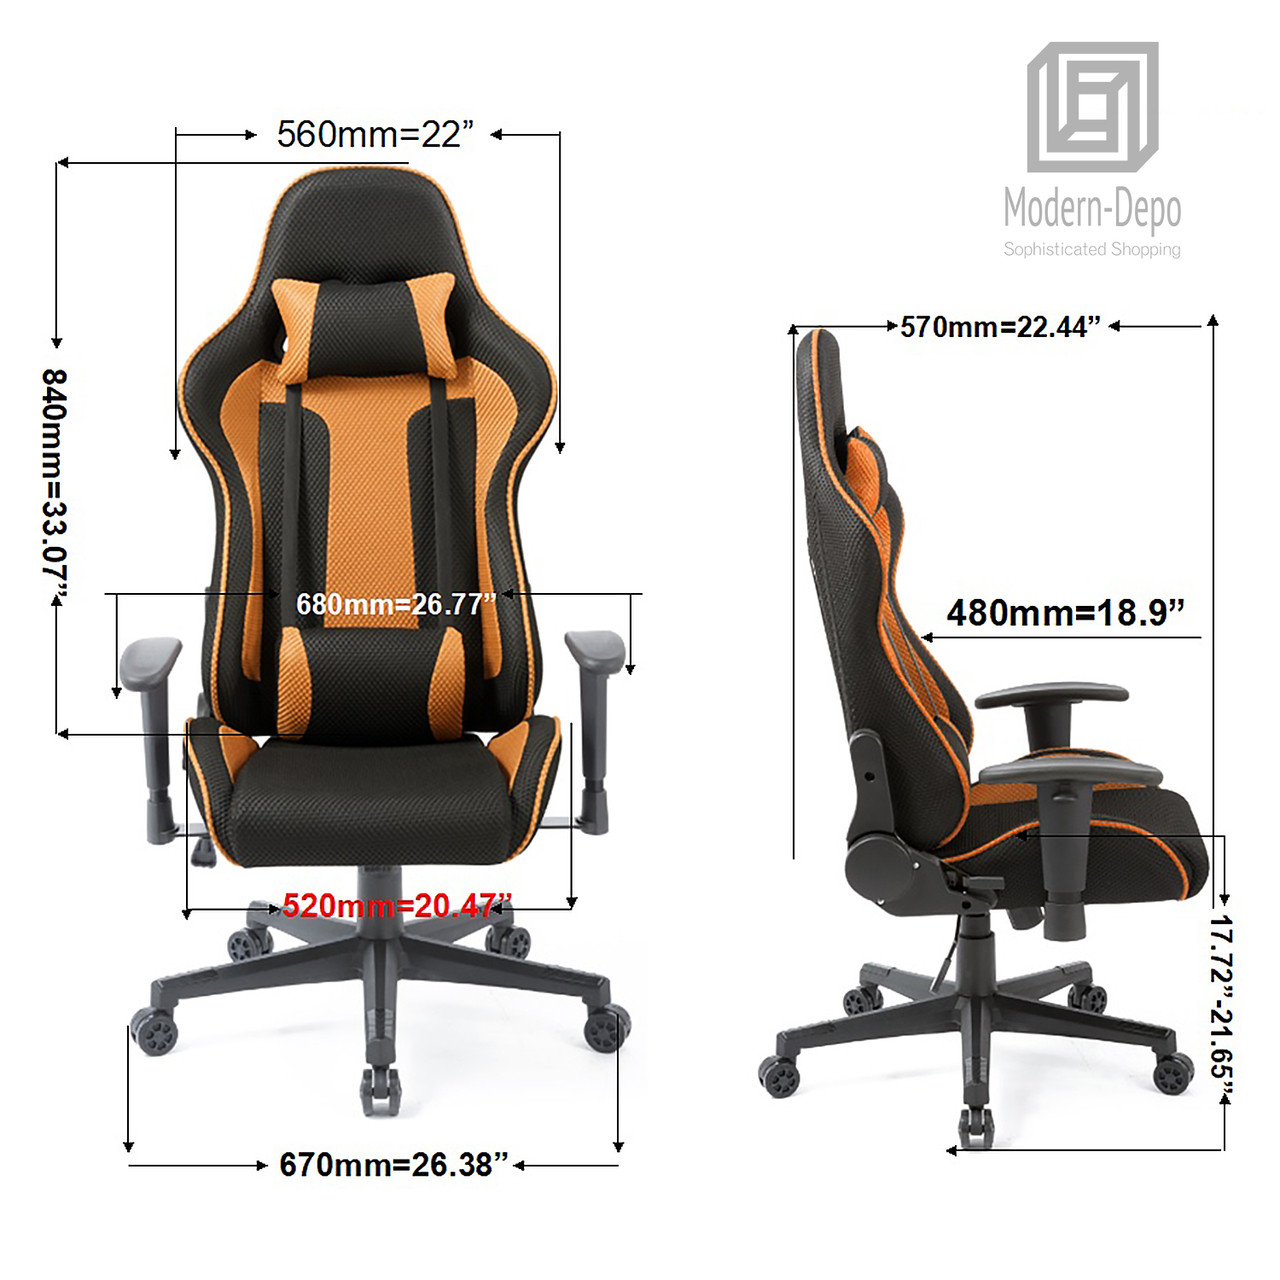 Wondrous Gaming Chair Racing High Back Mesh Office Chair Ergonomic Backrest And Seat Height Adjustment Computer Desk Chair Executive And Ergonomic Style Cjindustries Chair Design For Home Cjindustriesco